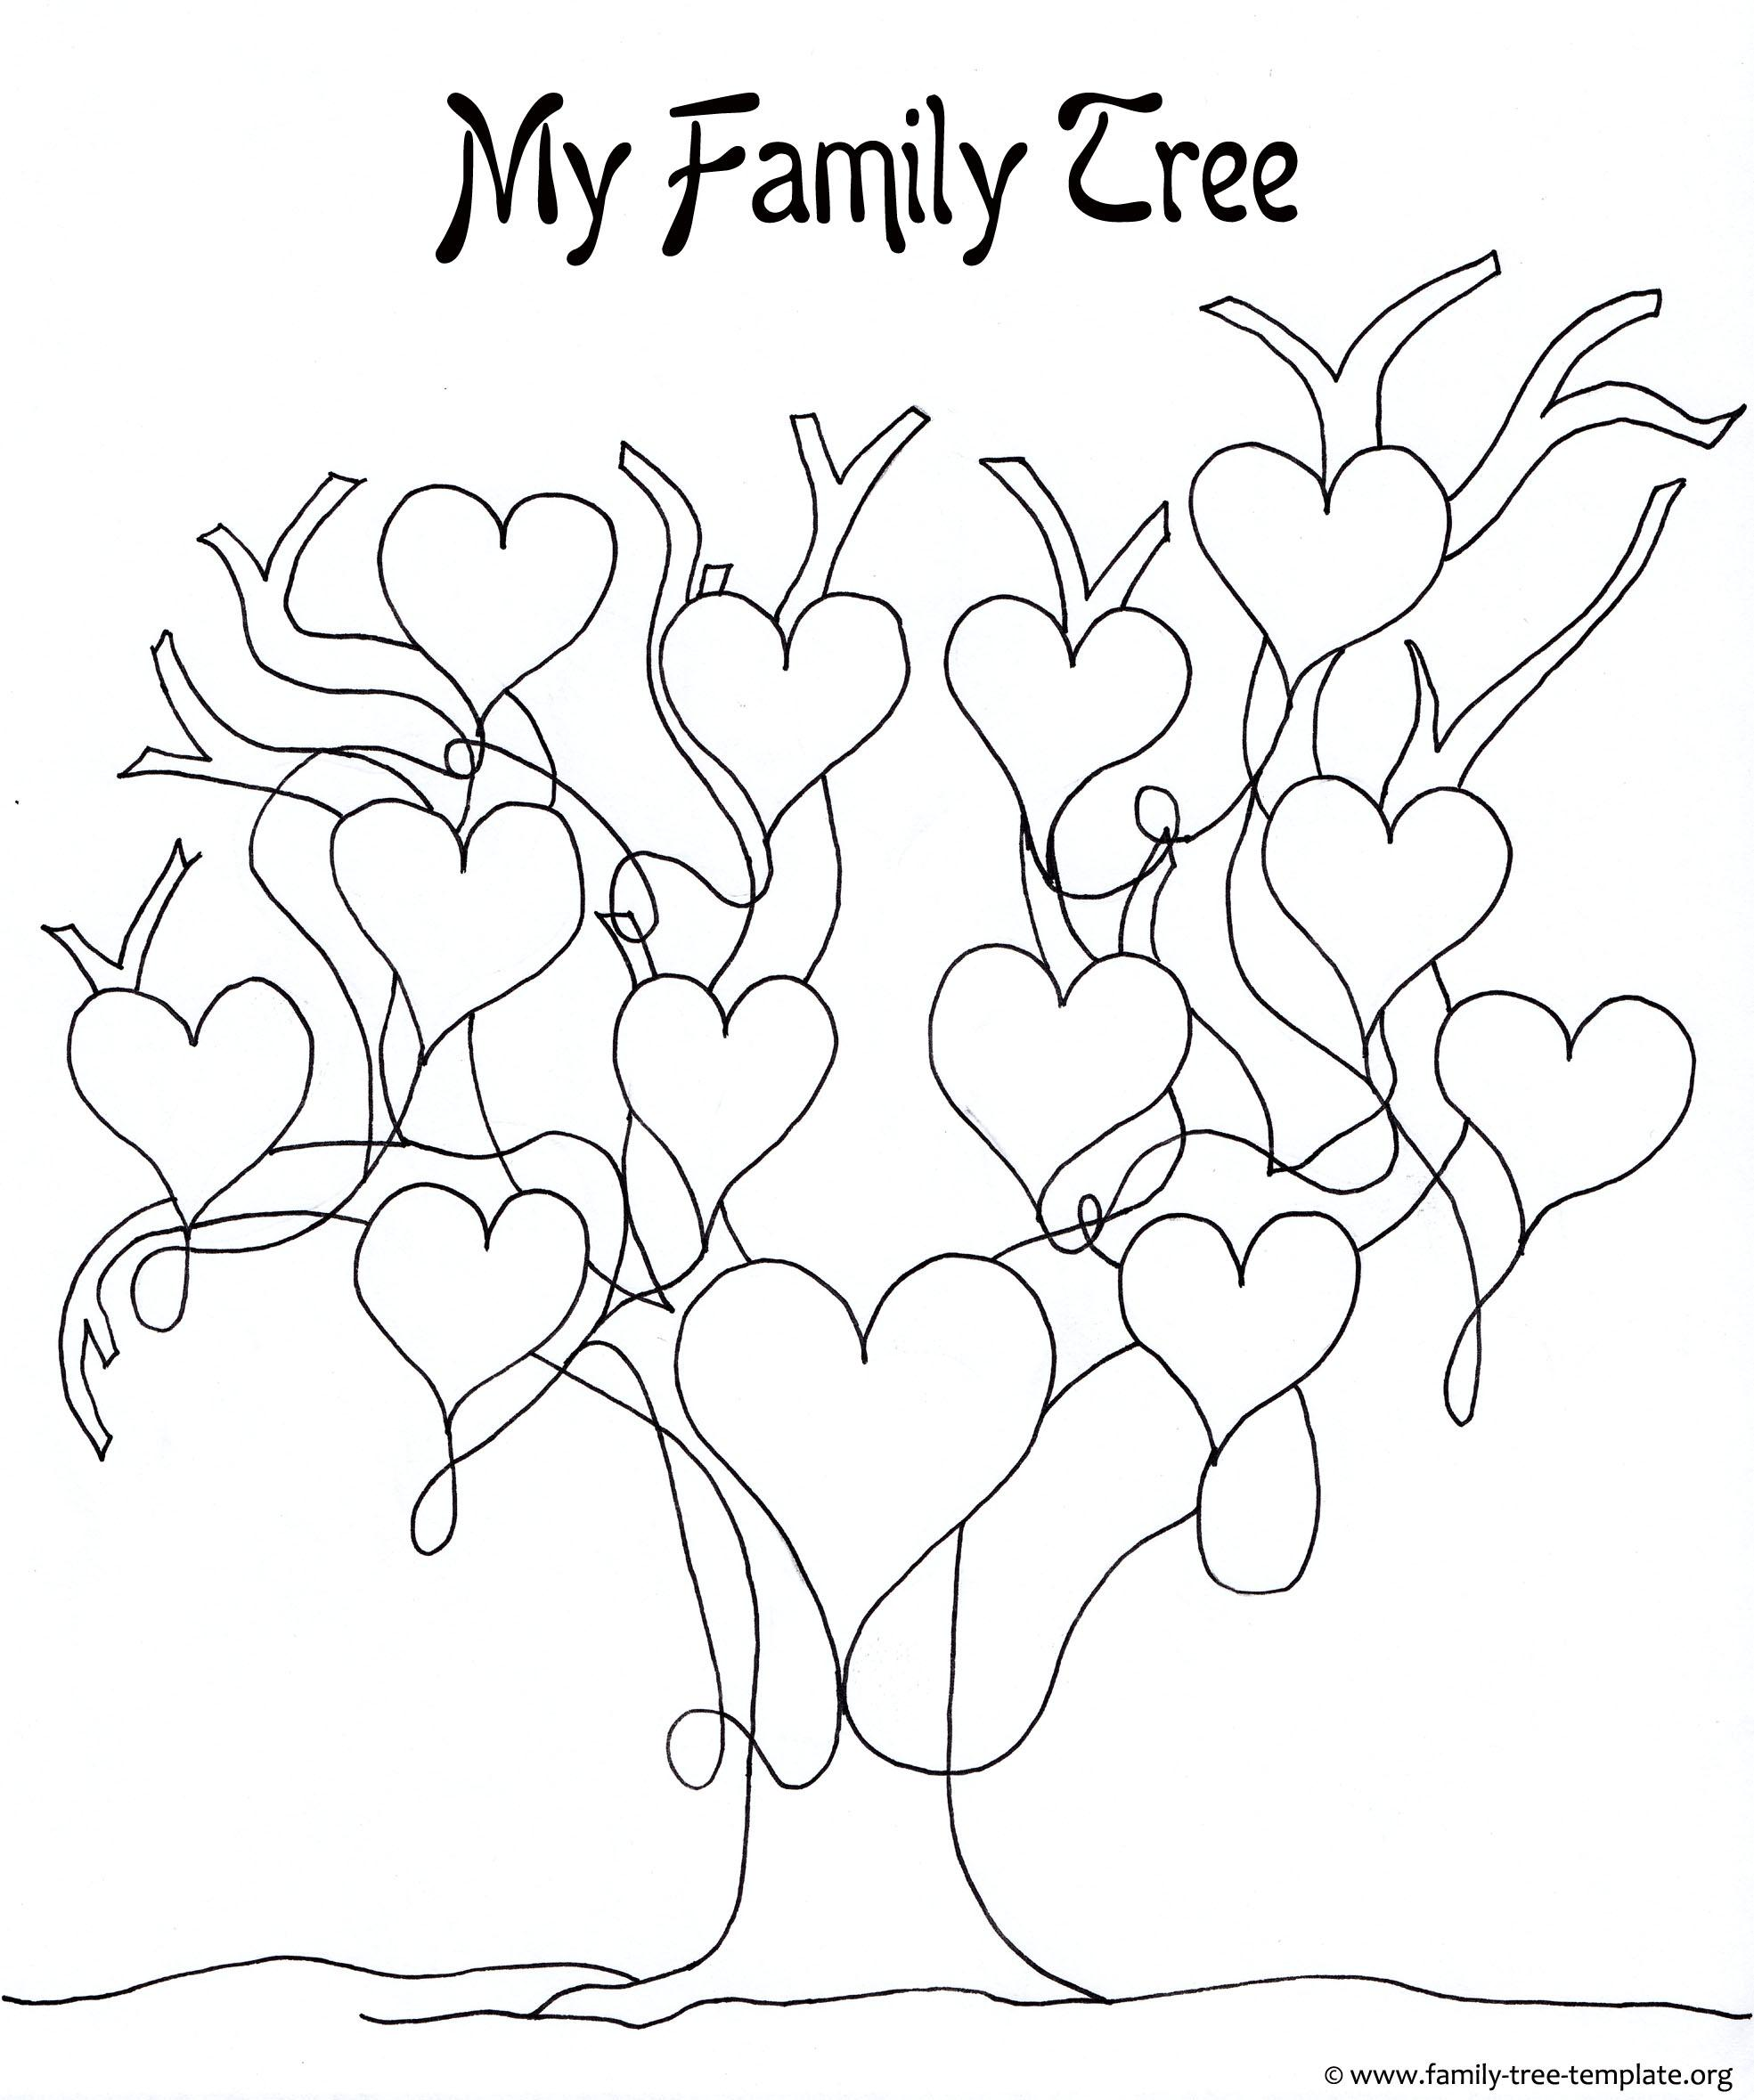 Printable Tree House Plans: Printable Tree Template